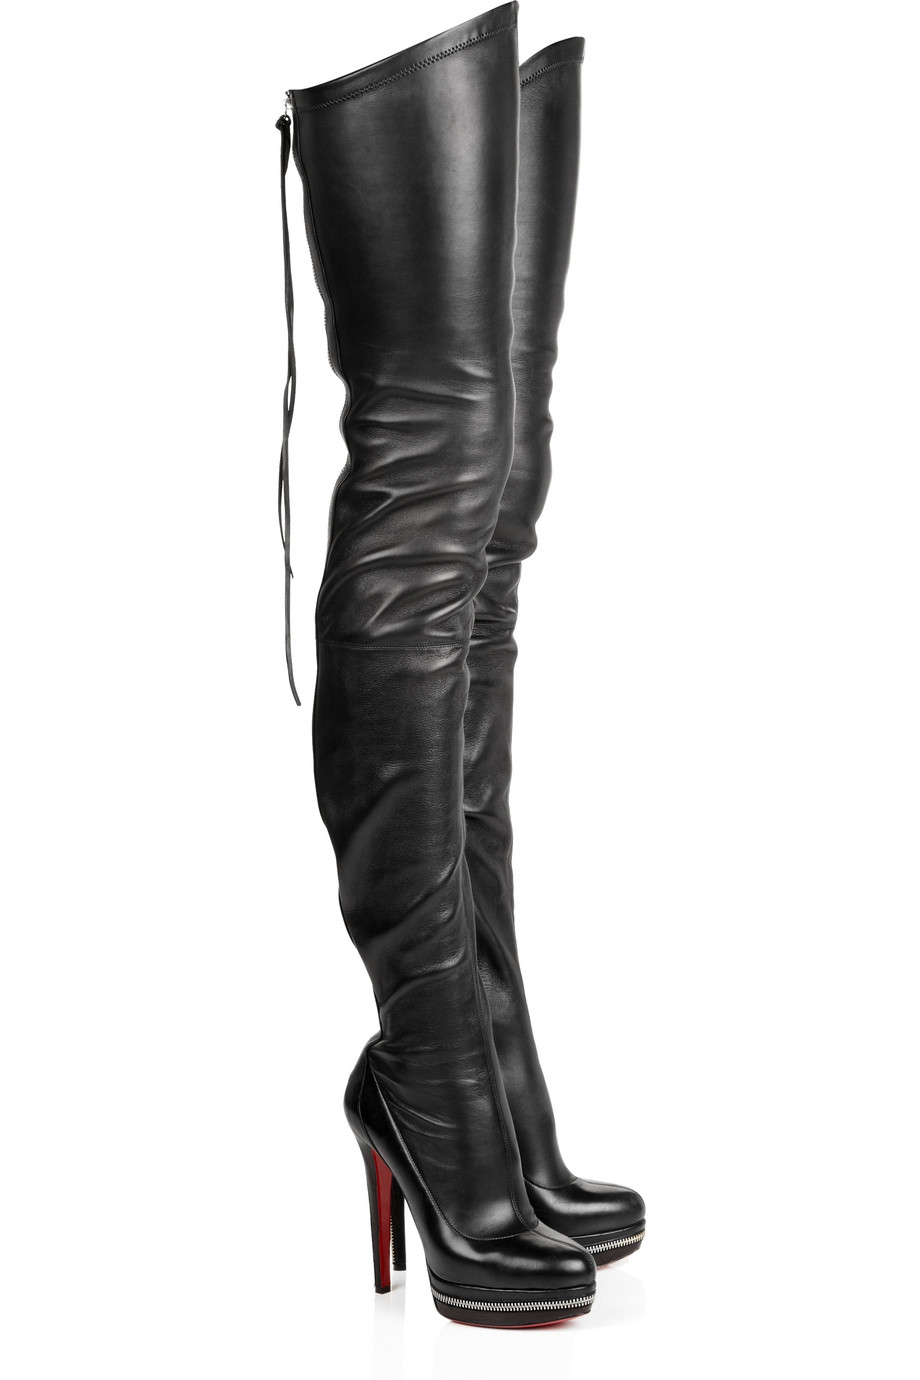 Christian Louboutin Unique 140 Leather Boots In Black - Lyst-7548